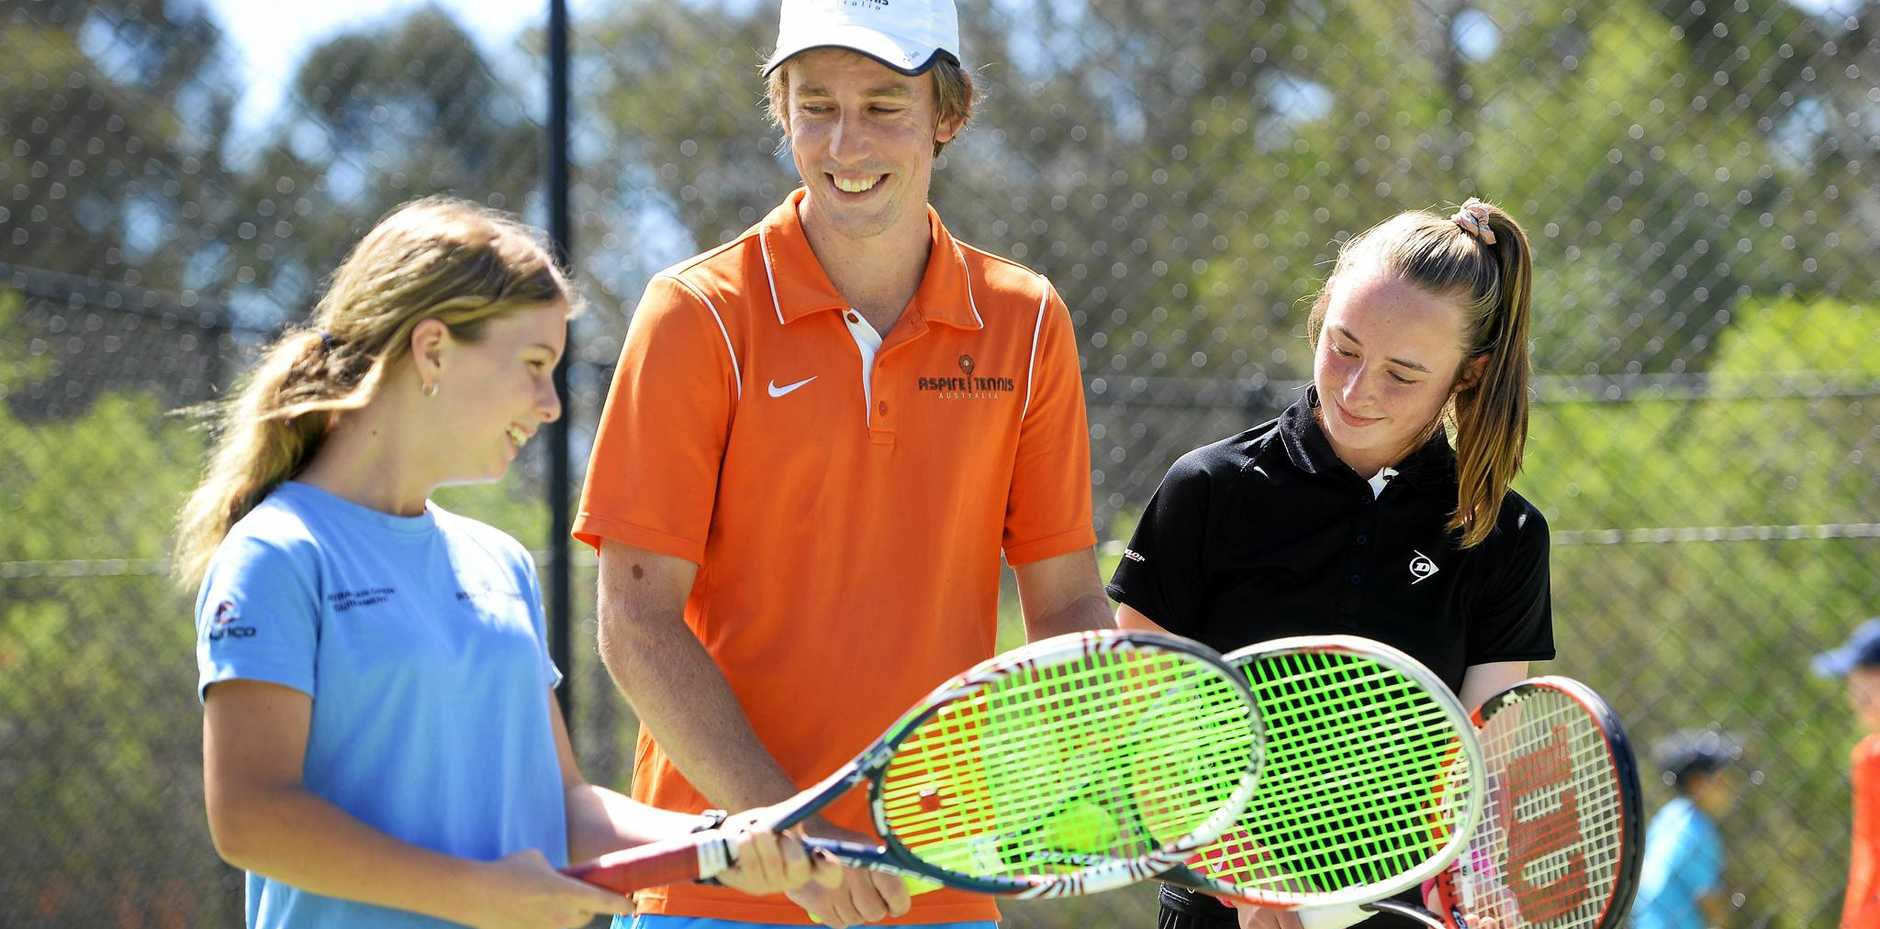 FUN LEARNING: Tennis coach Mitch Garen gives some advice to tennis players Sharni Higgins and Shontai Meloury at the Aspire Tennis Centre.